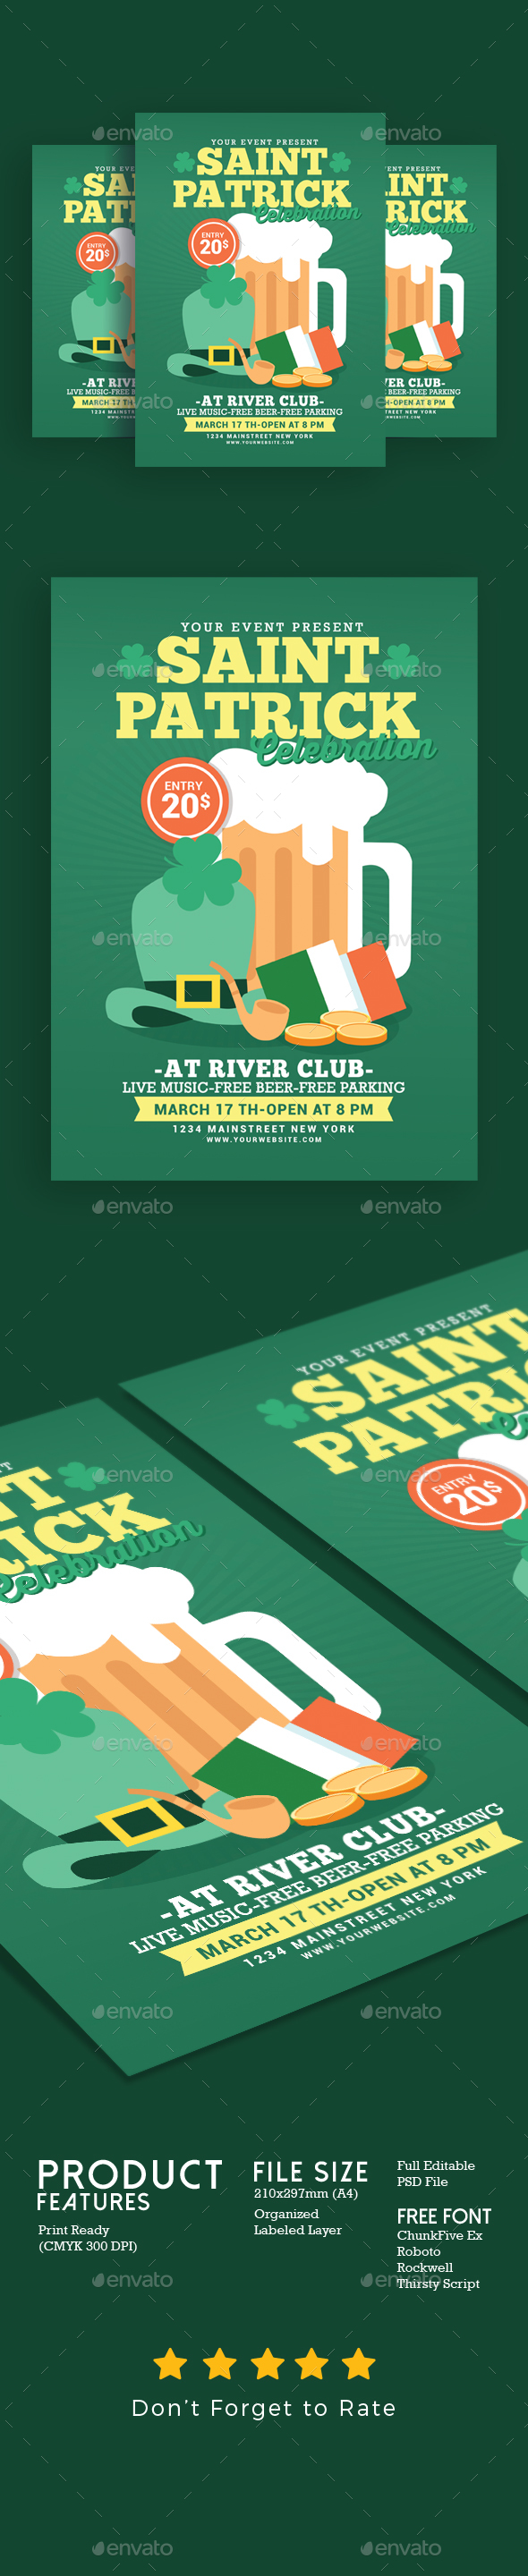 Saint Patrick Celebration Flyer - Events Flyers